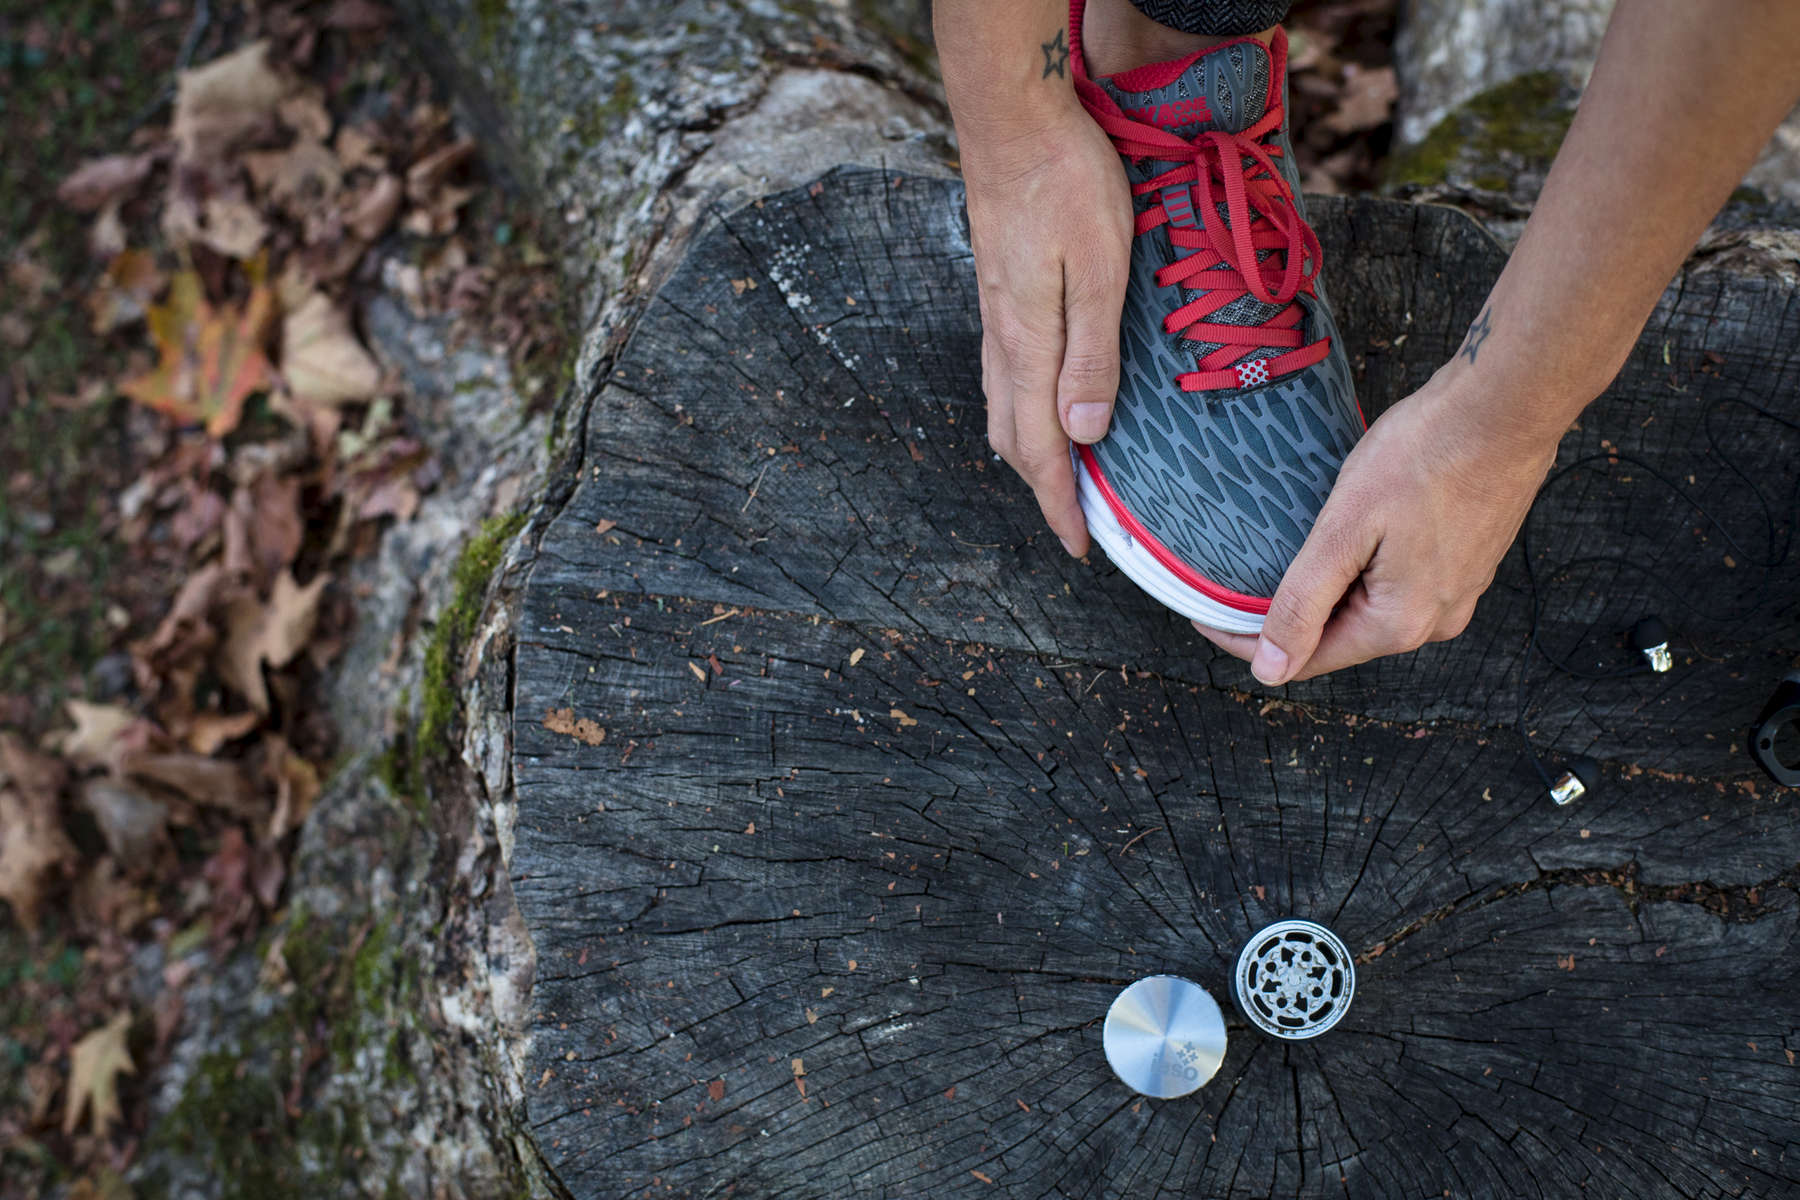 Woman athlete stretching during a jog, with IASO goods stainless steel cannabis grinder.